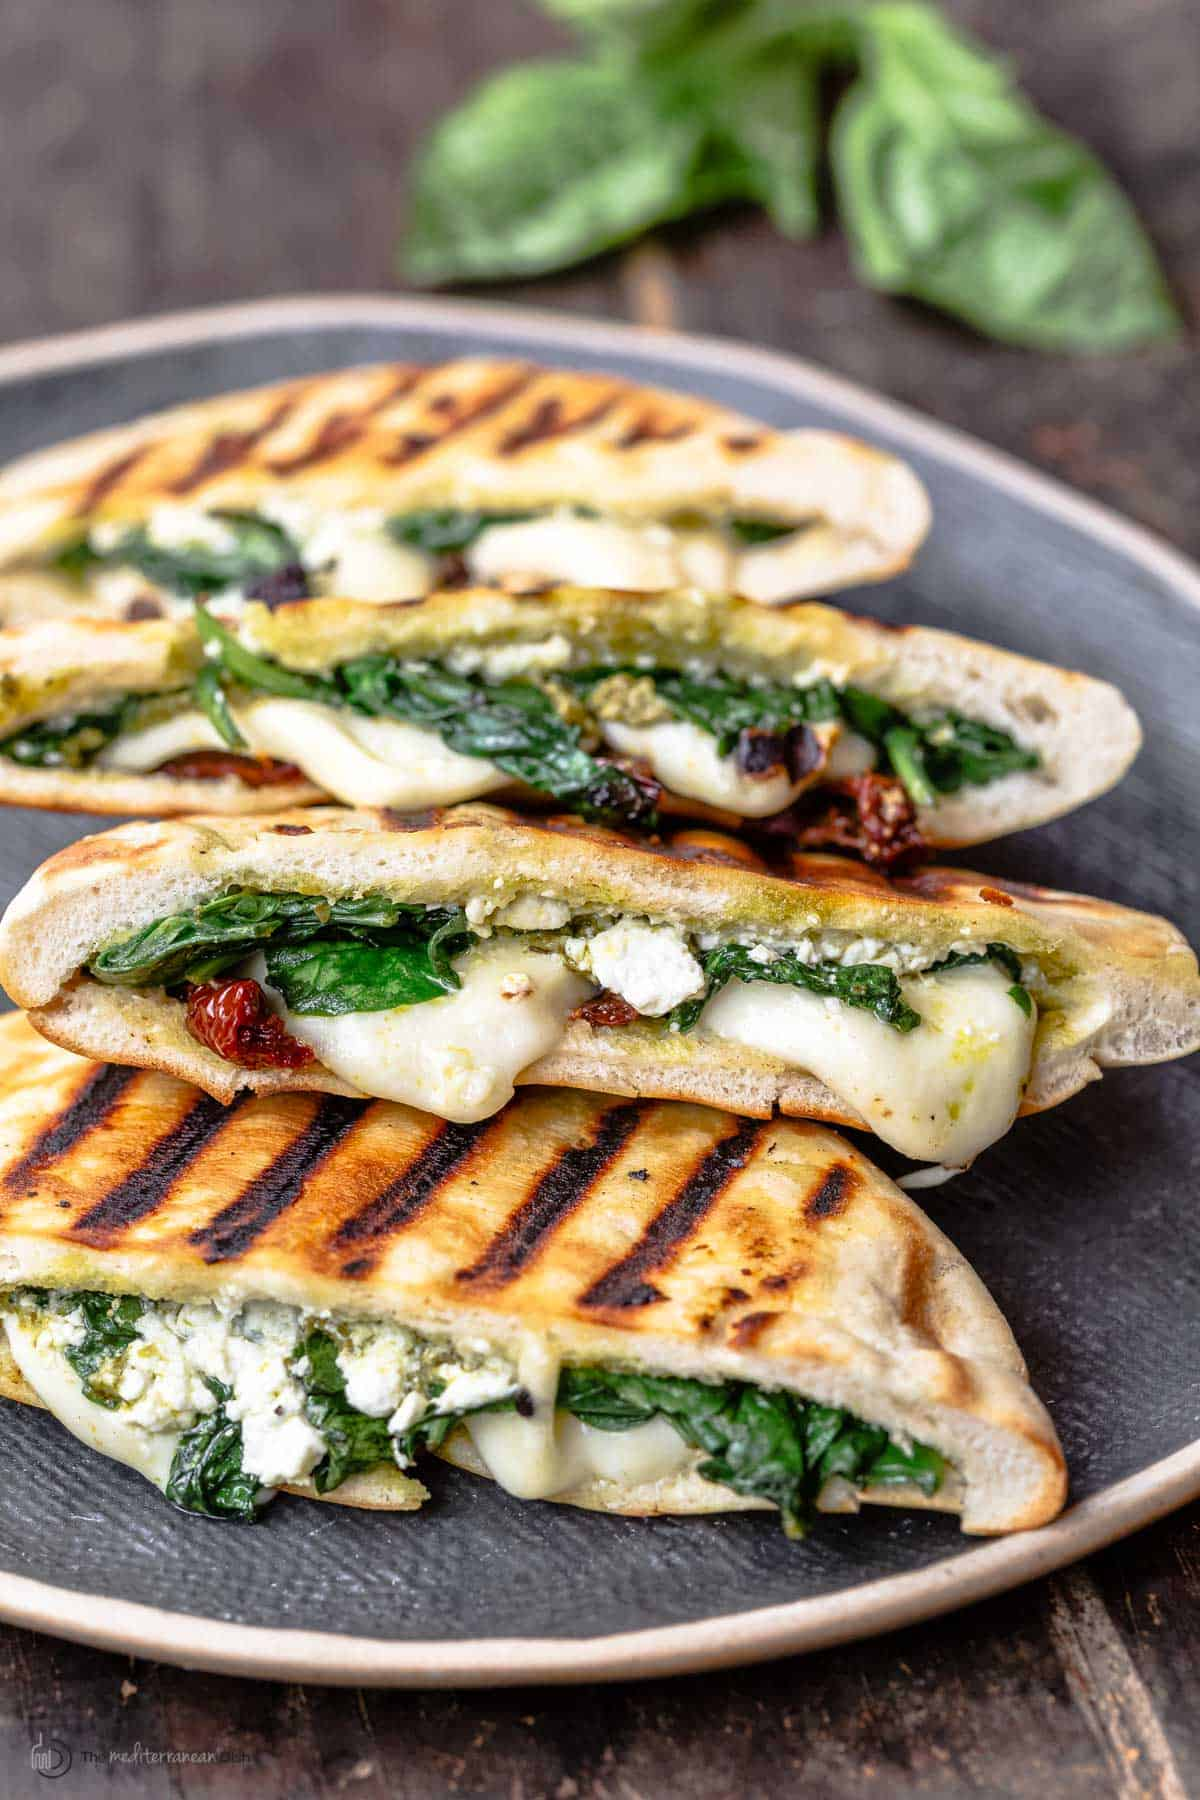 pita grilled cheese sandwiches with melted mozzarella, feta, spinach and sundried tomatoes on a platter